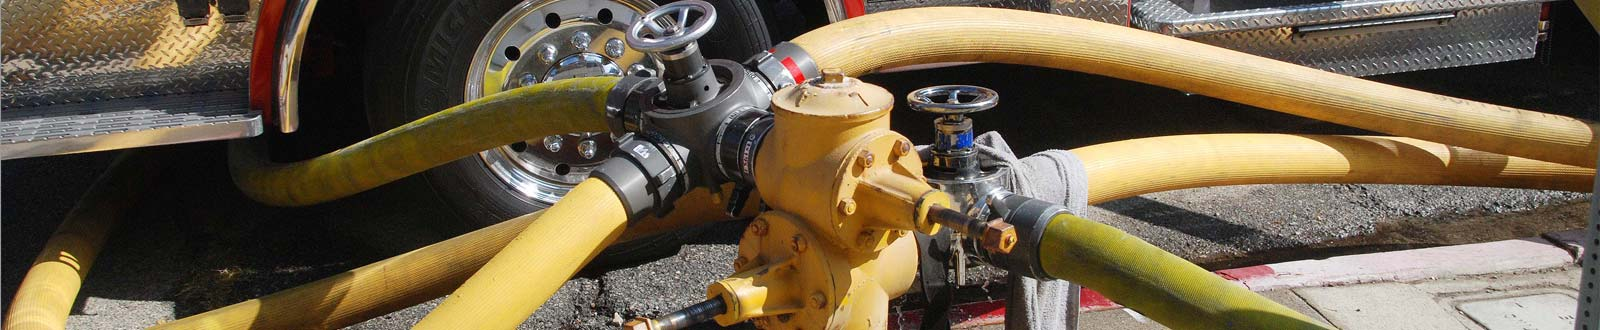 A fire hydrant with hoses connected